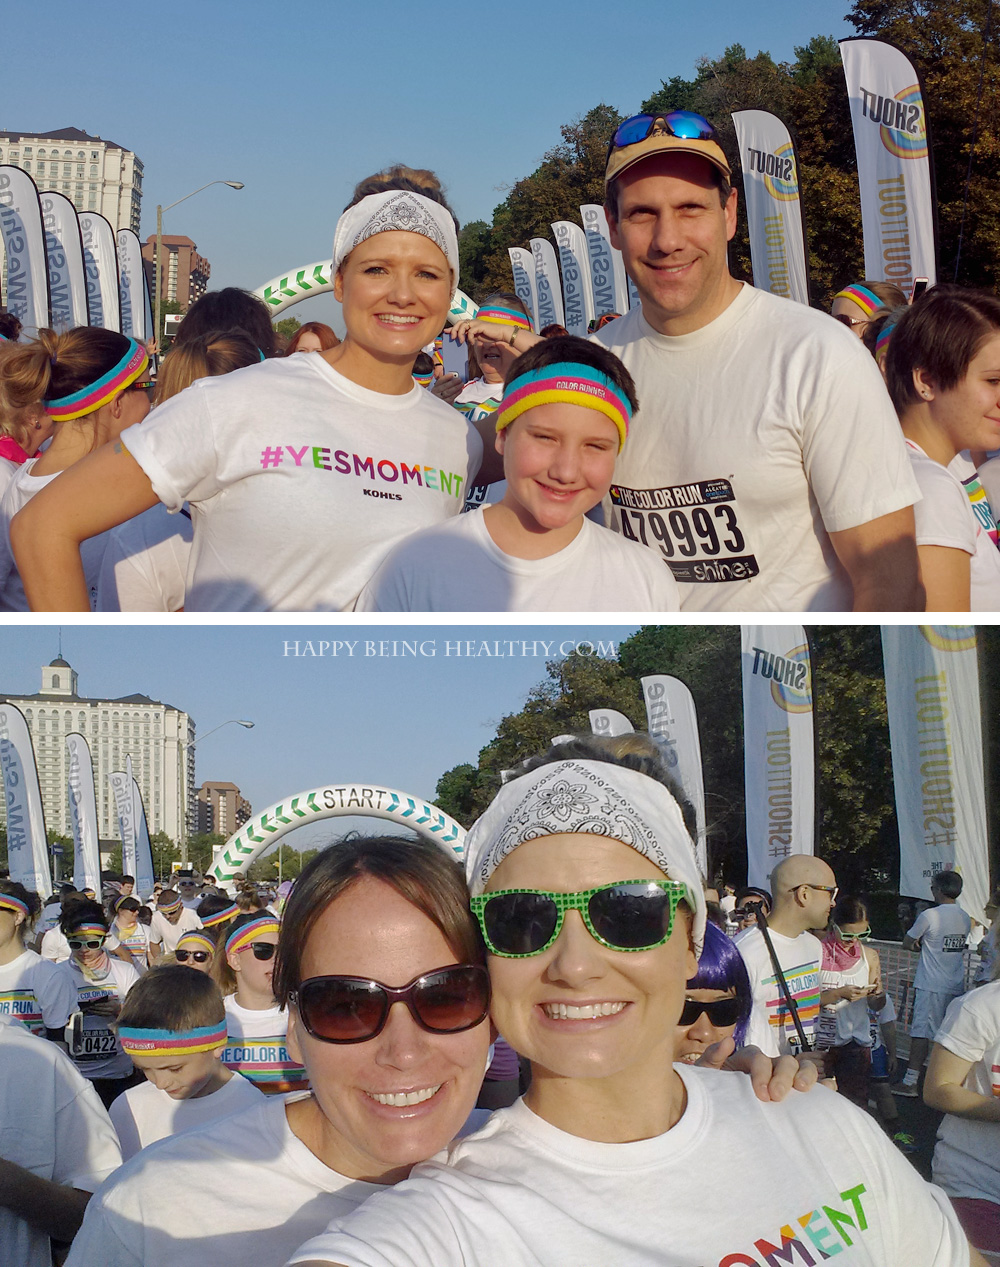 Getting Ready to run the Color Run